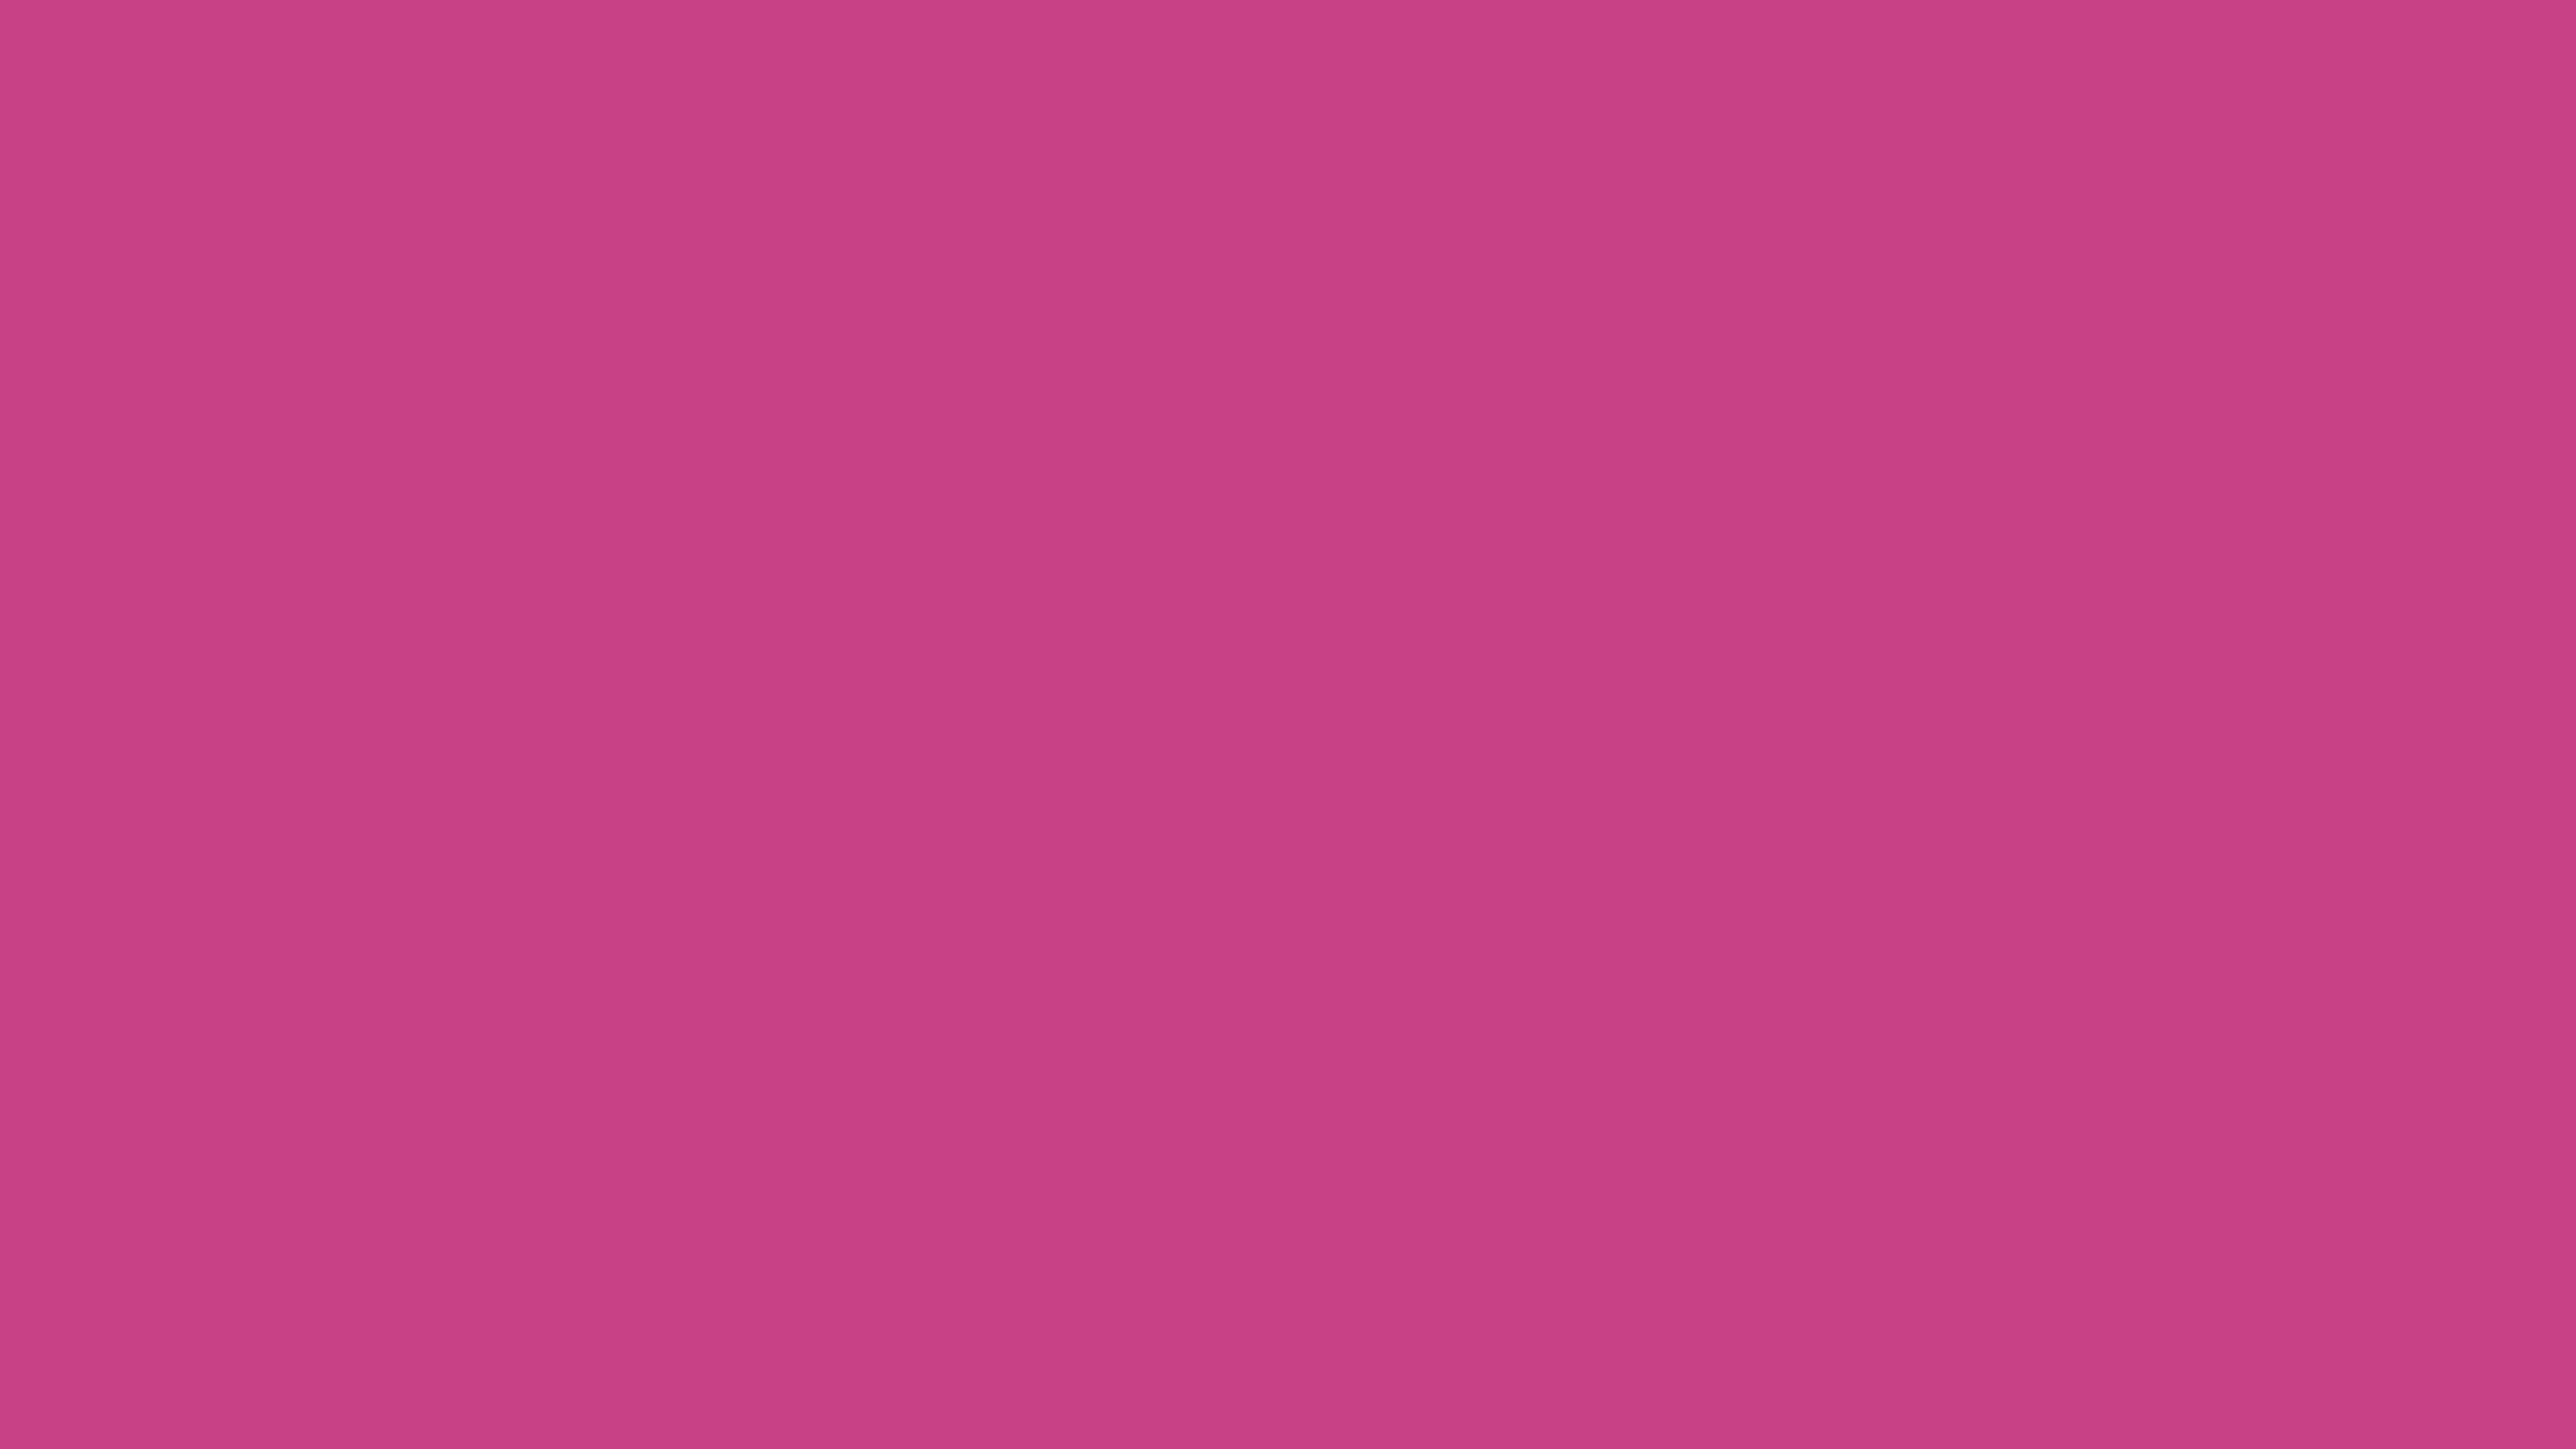 3840x2160 Smitten Solid Color Background